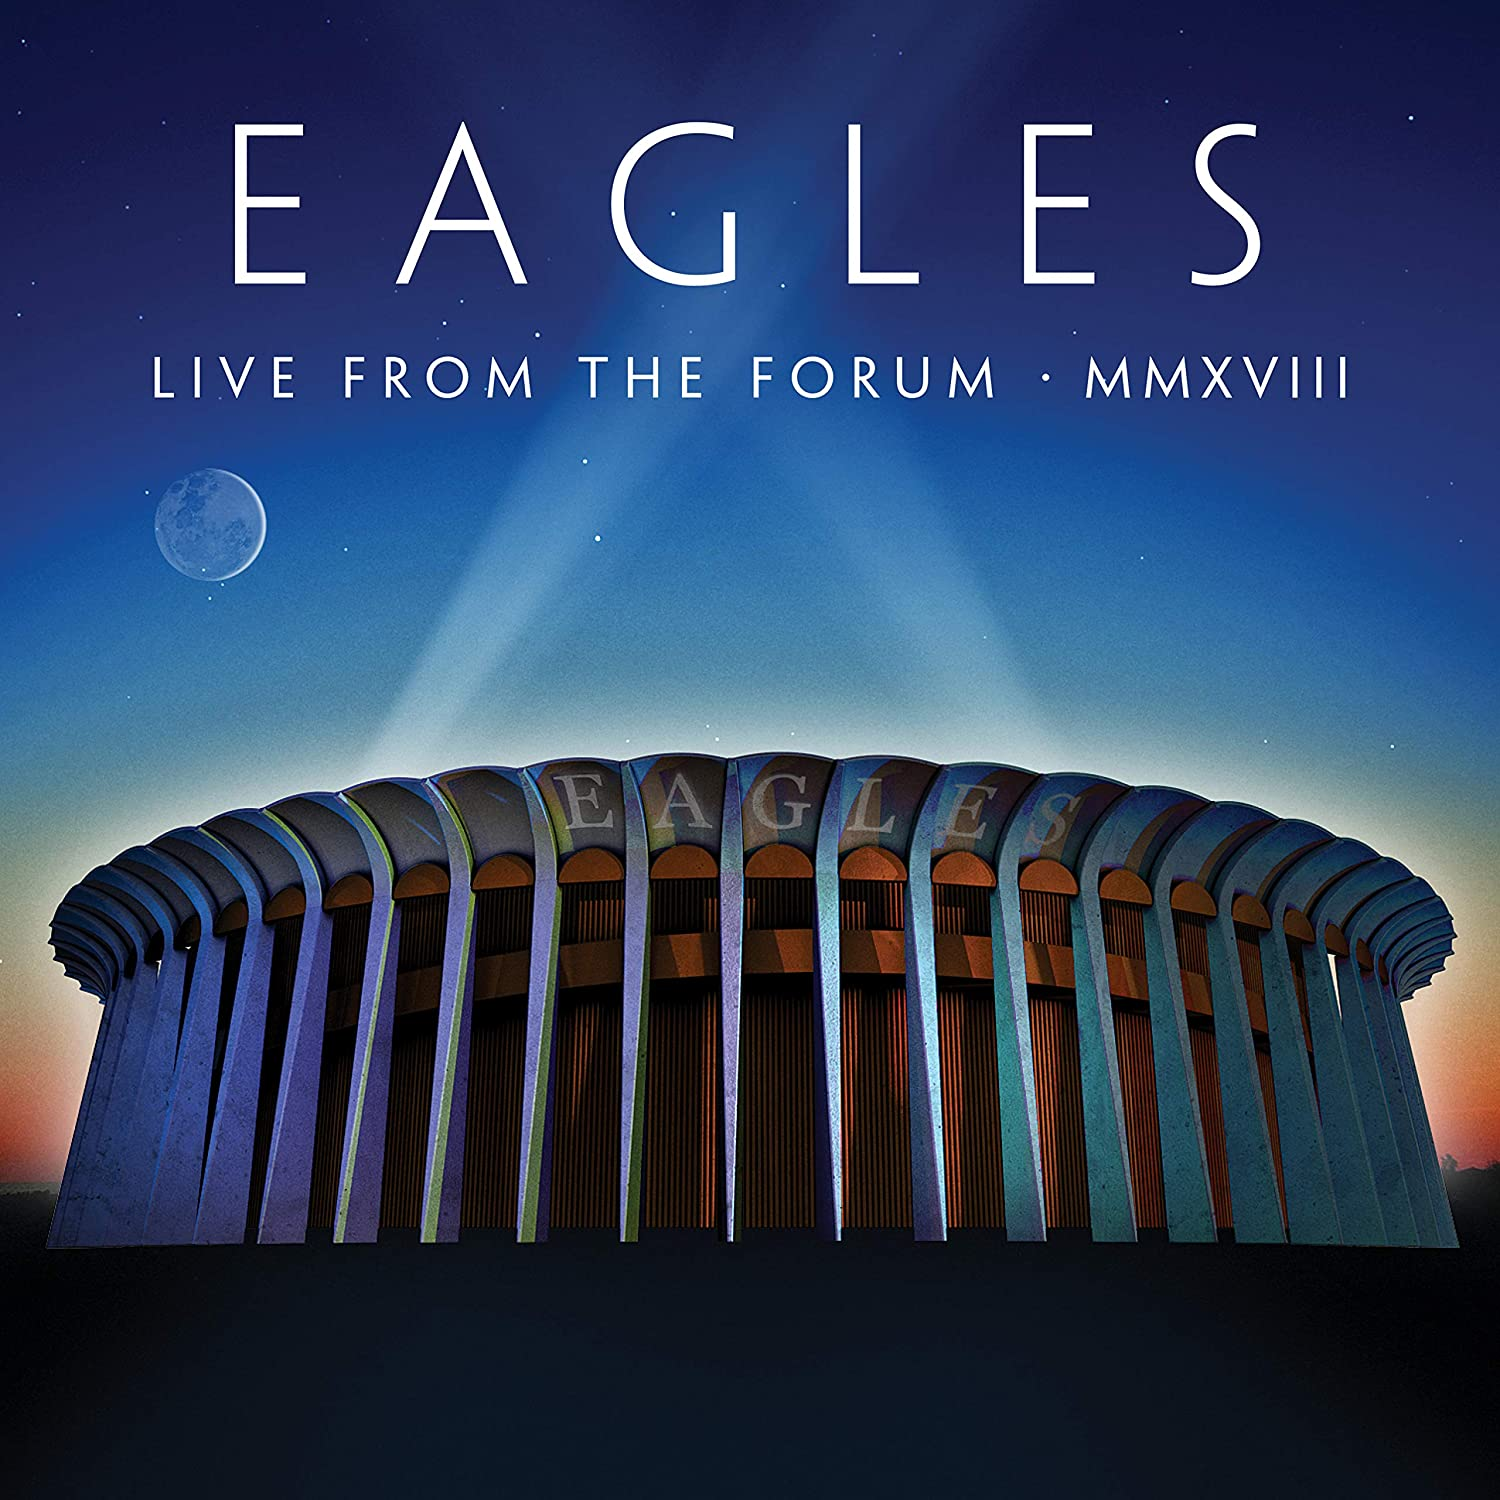 Eagles - Live from the Forum MMXVIII (Ltd Box) [4LP] Import